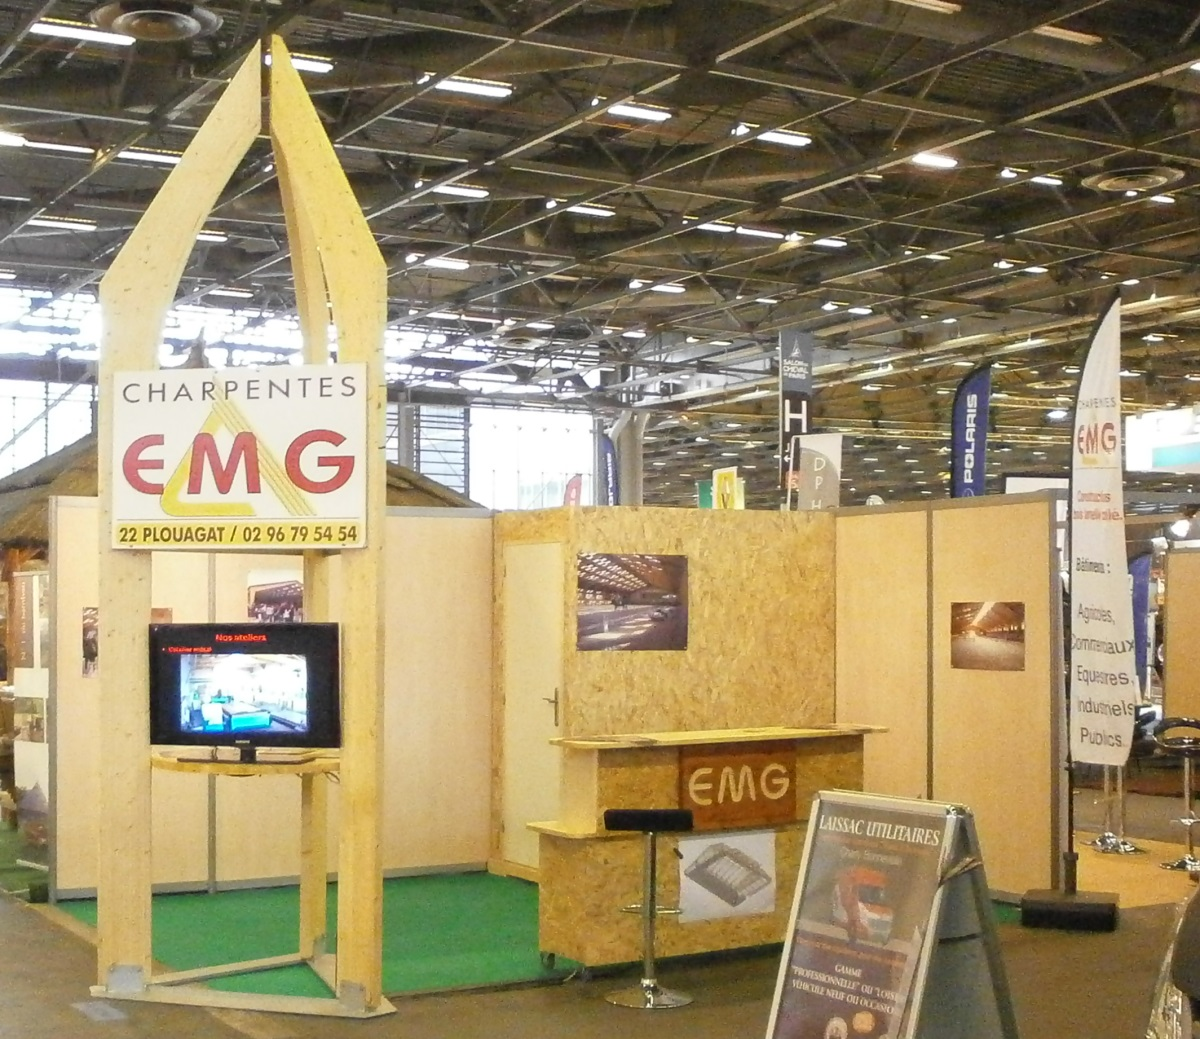 Emg au salon du cheval de paris du 30 novembre au 8 for Salon du batiment paris